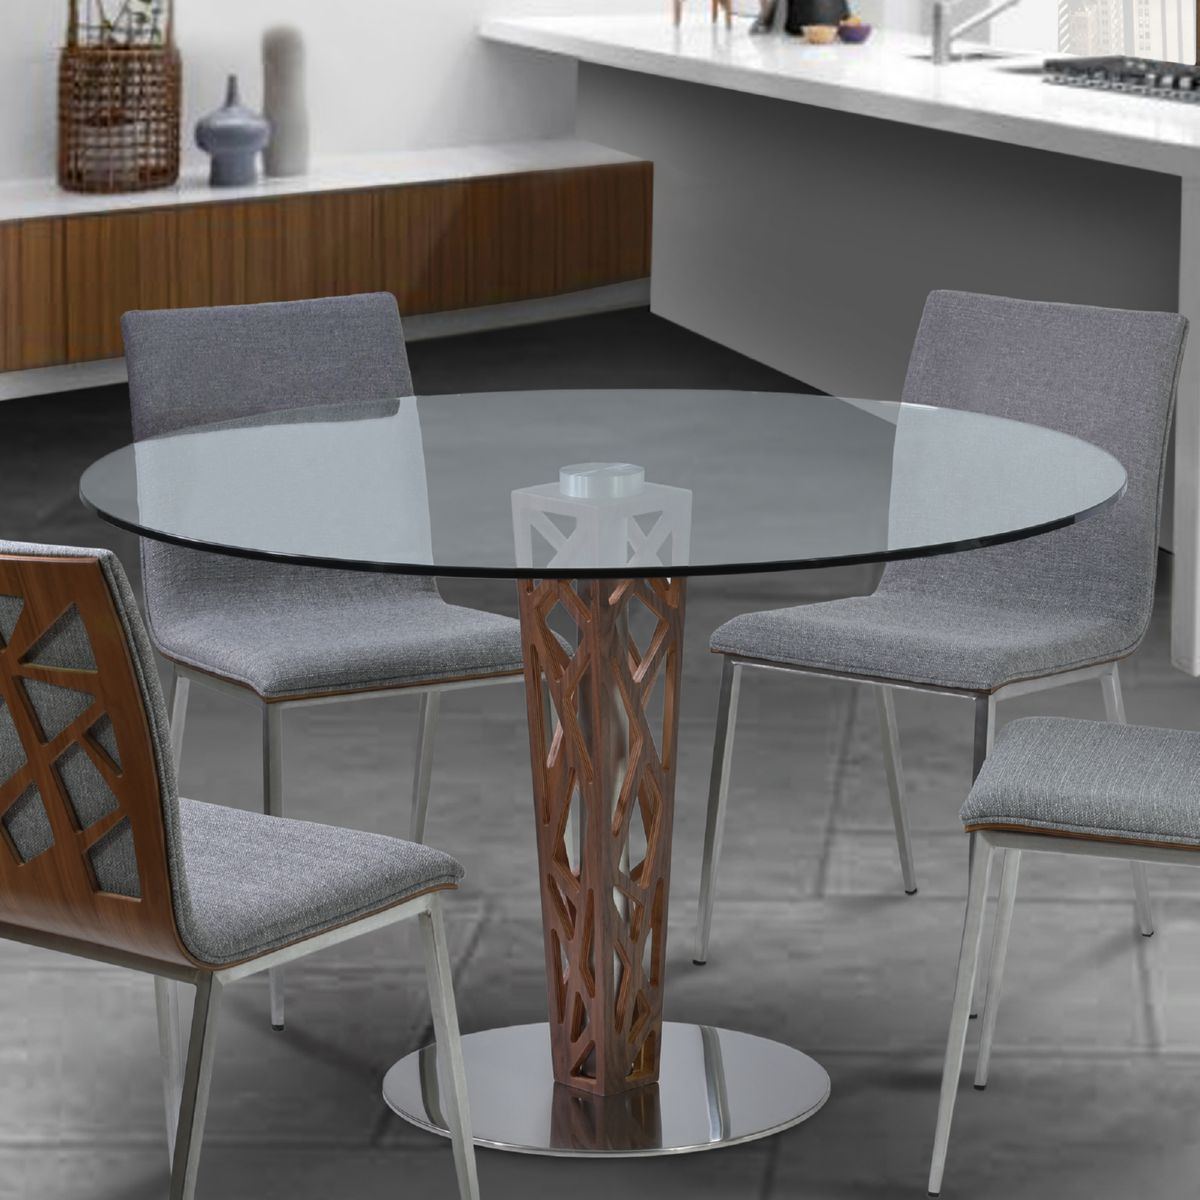 Armen living lccrditogr crystal 48 round dining table in walnut armen living crystal 48 round dining table in walnut veneer brushed stainless steel tempered glass top geotapseo Images